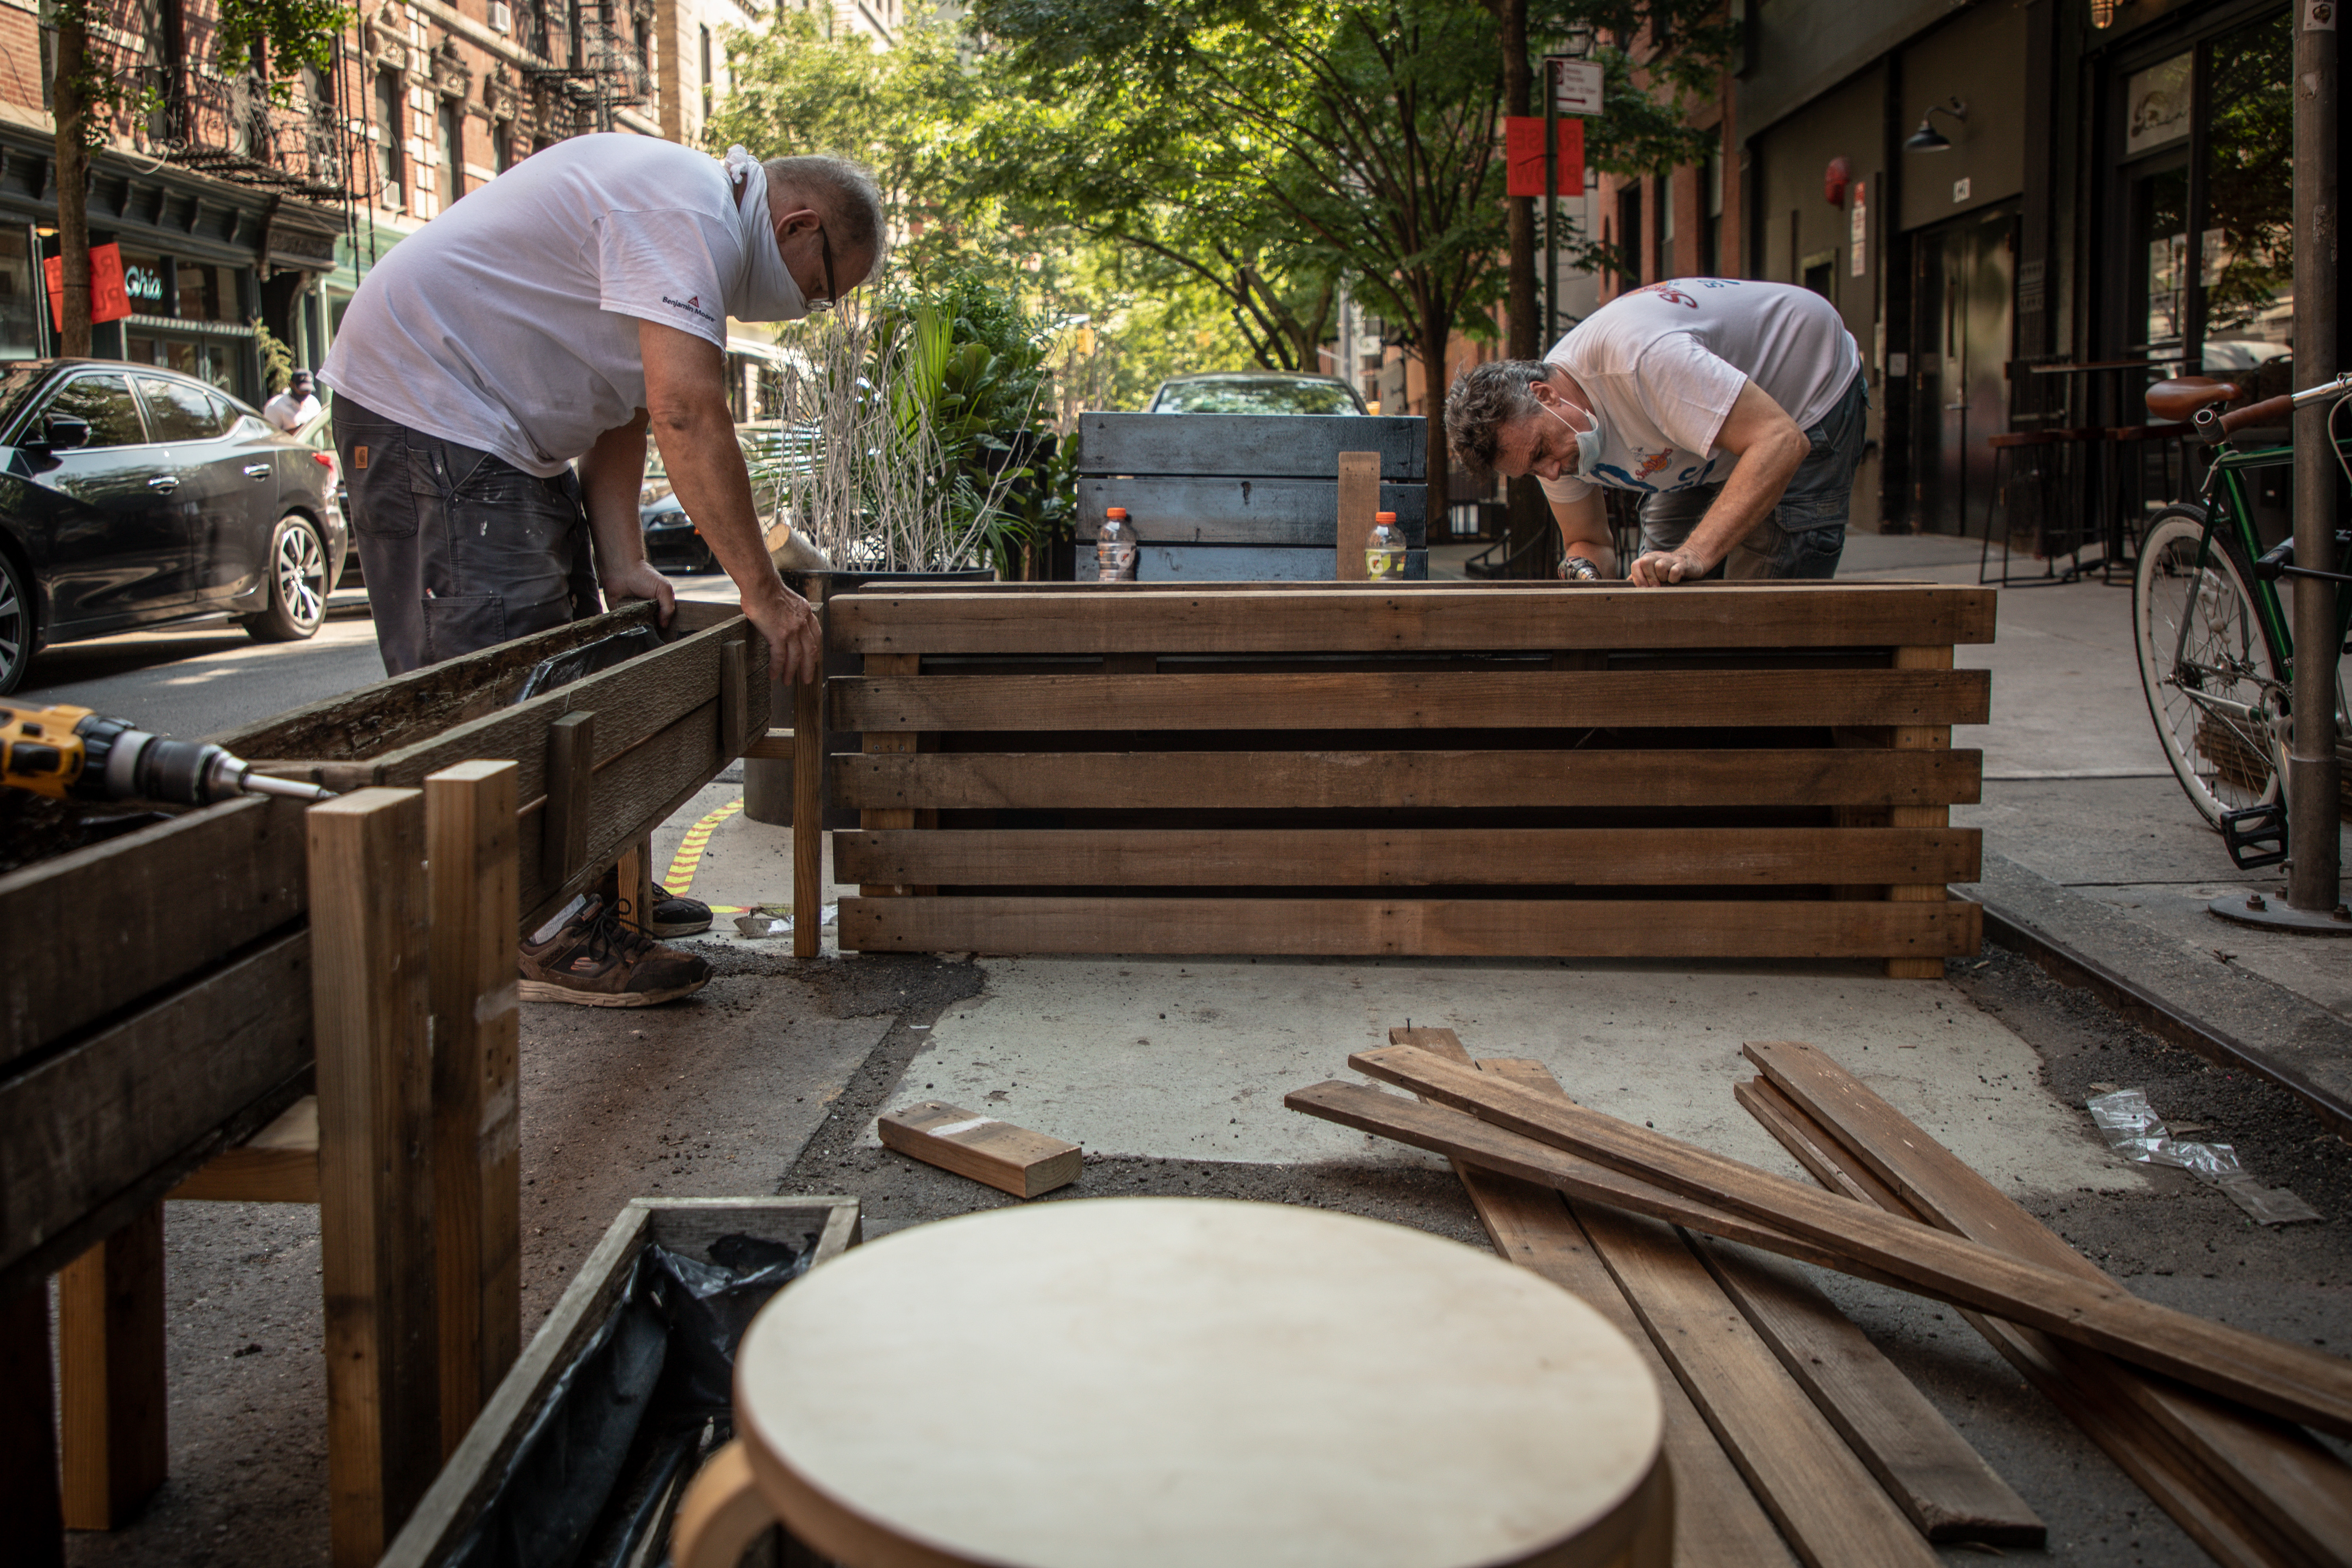 Two workers can be seen installing barriers on the street outside a restaurant